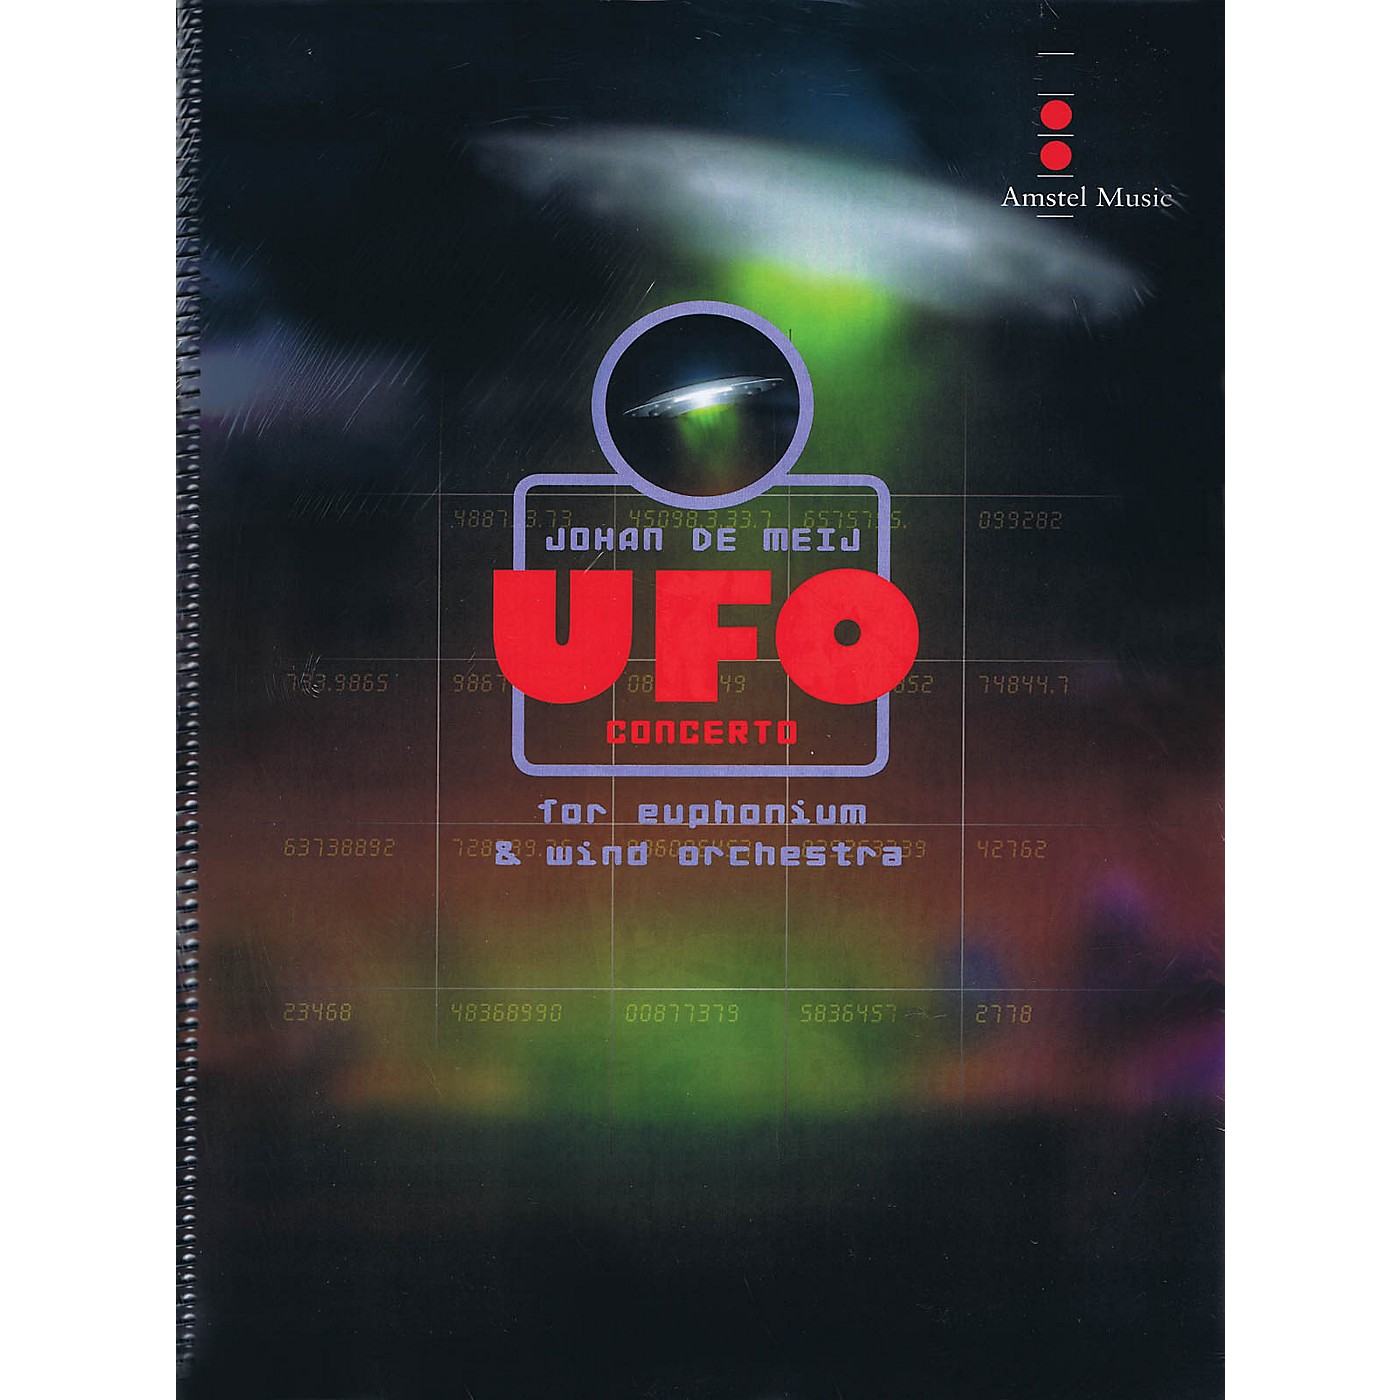 Amstel Music UFO Concerto (for Euphonium and Wind Orchestra) (Score Only) Concert Band Level 5 by Johan de Meij thumbnail